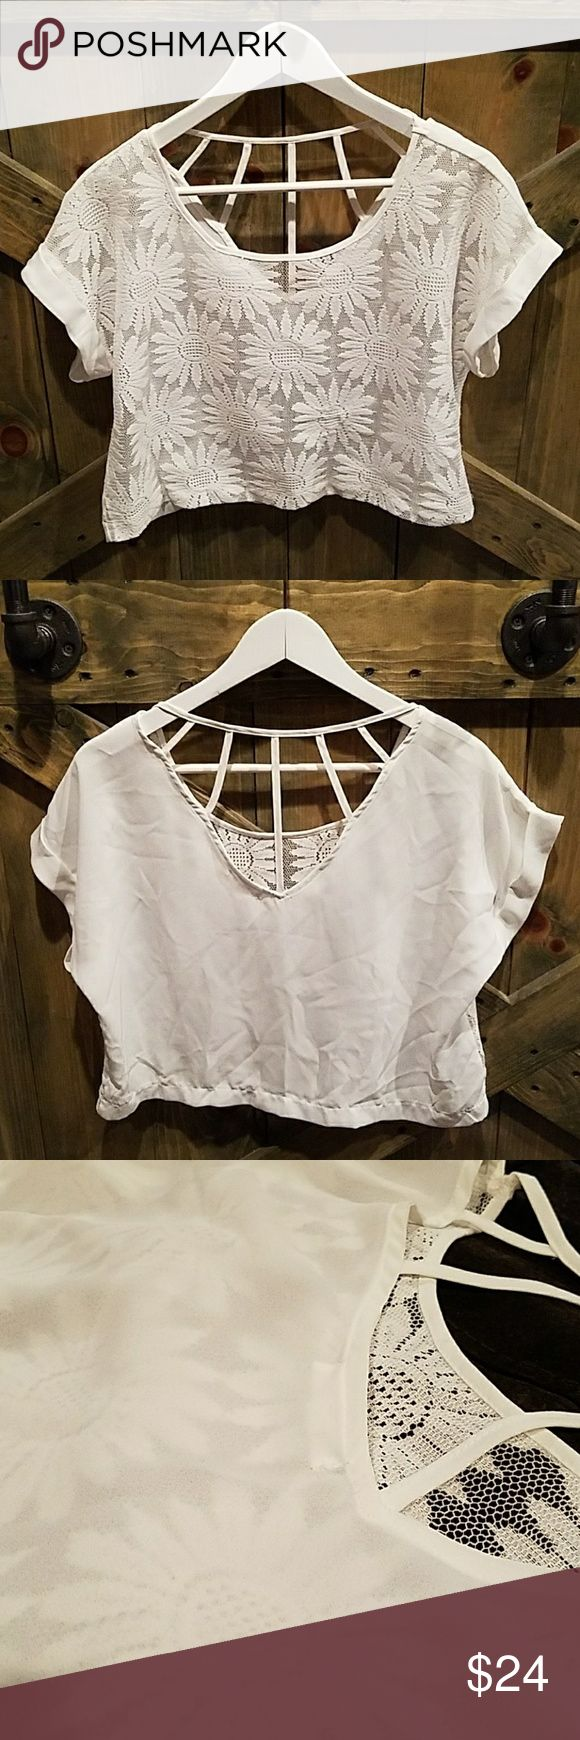 Daisy Cream Crop Top Too cute half top in cream with lace from, is see thru, great for layering, no rips or stains or snags Mine Tops Crop Tops